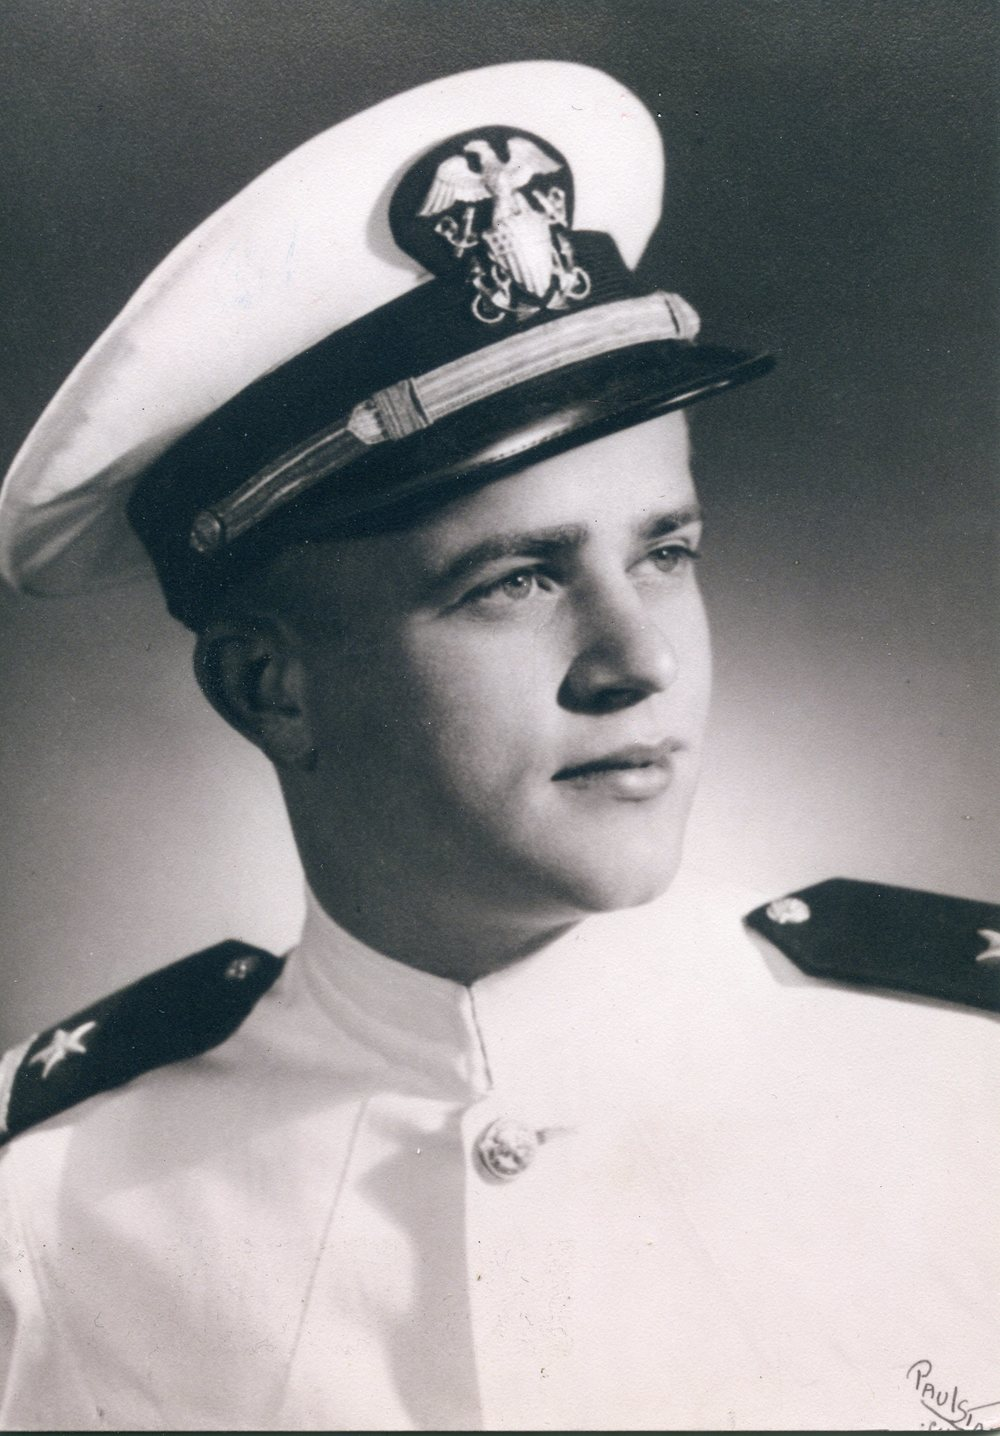 Robert's midshipmen portrait